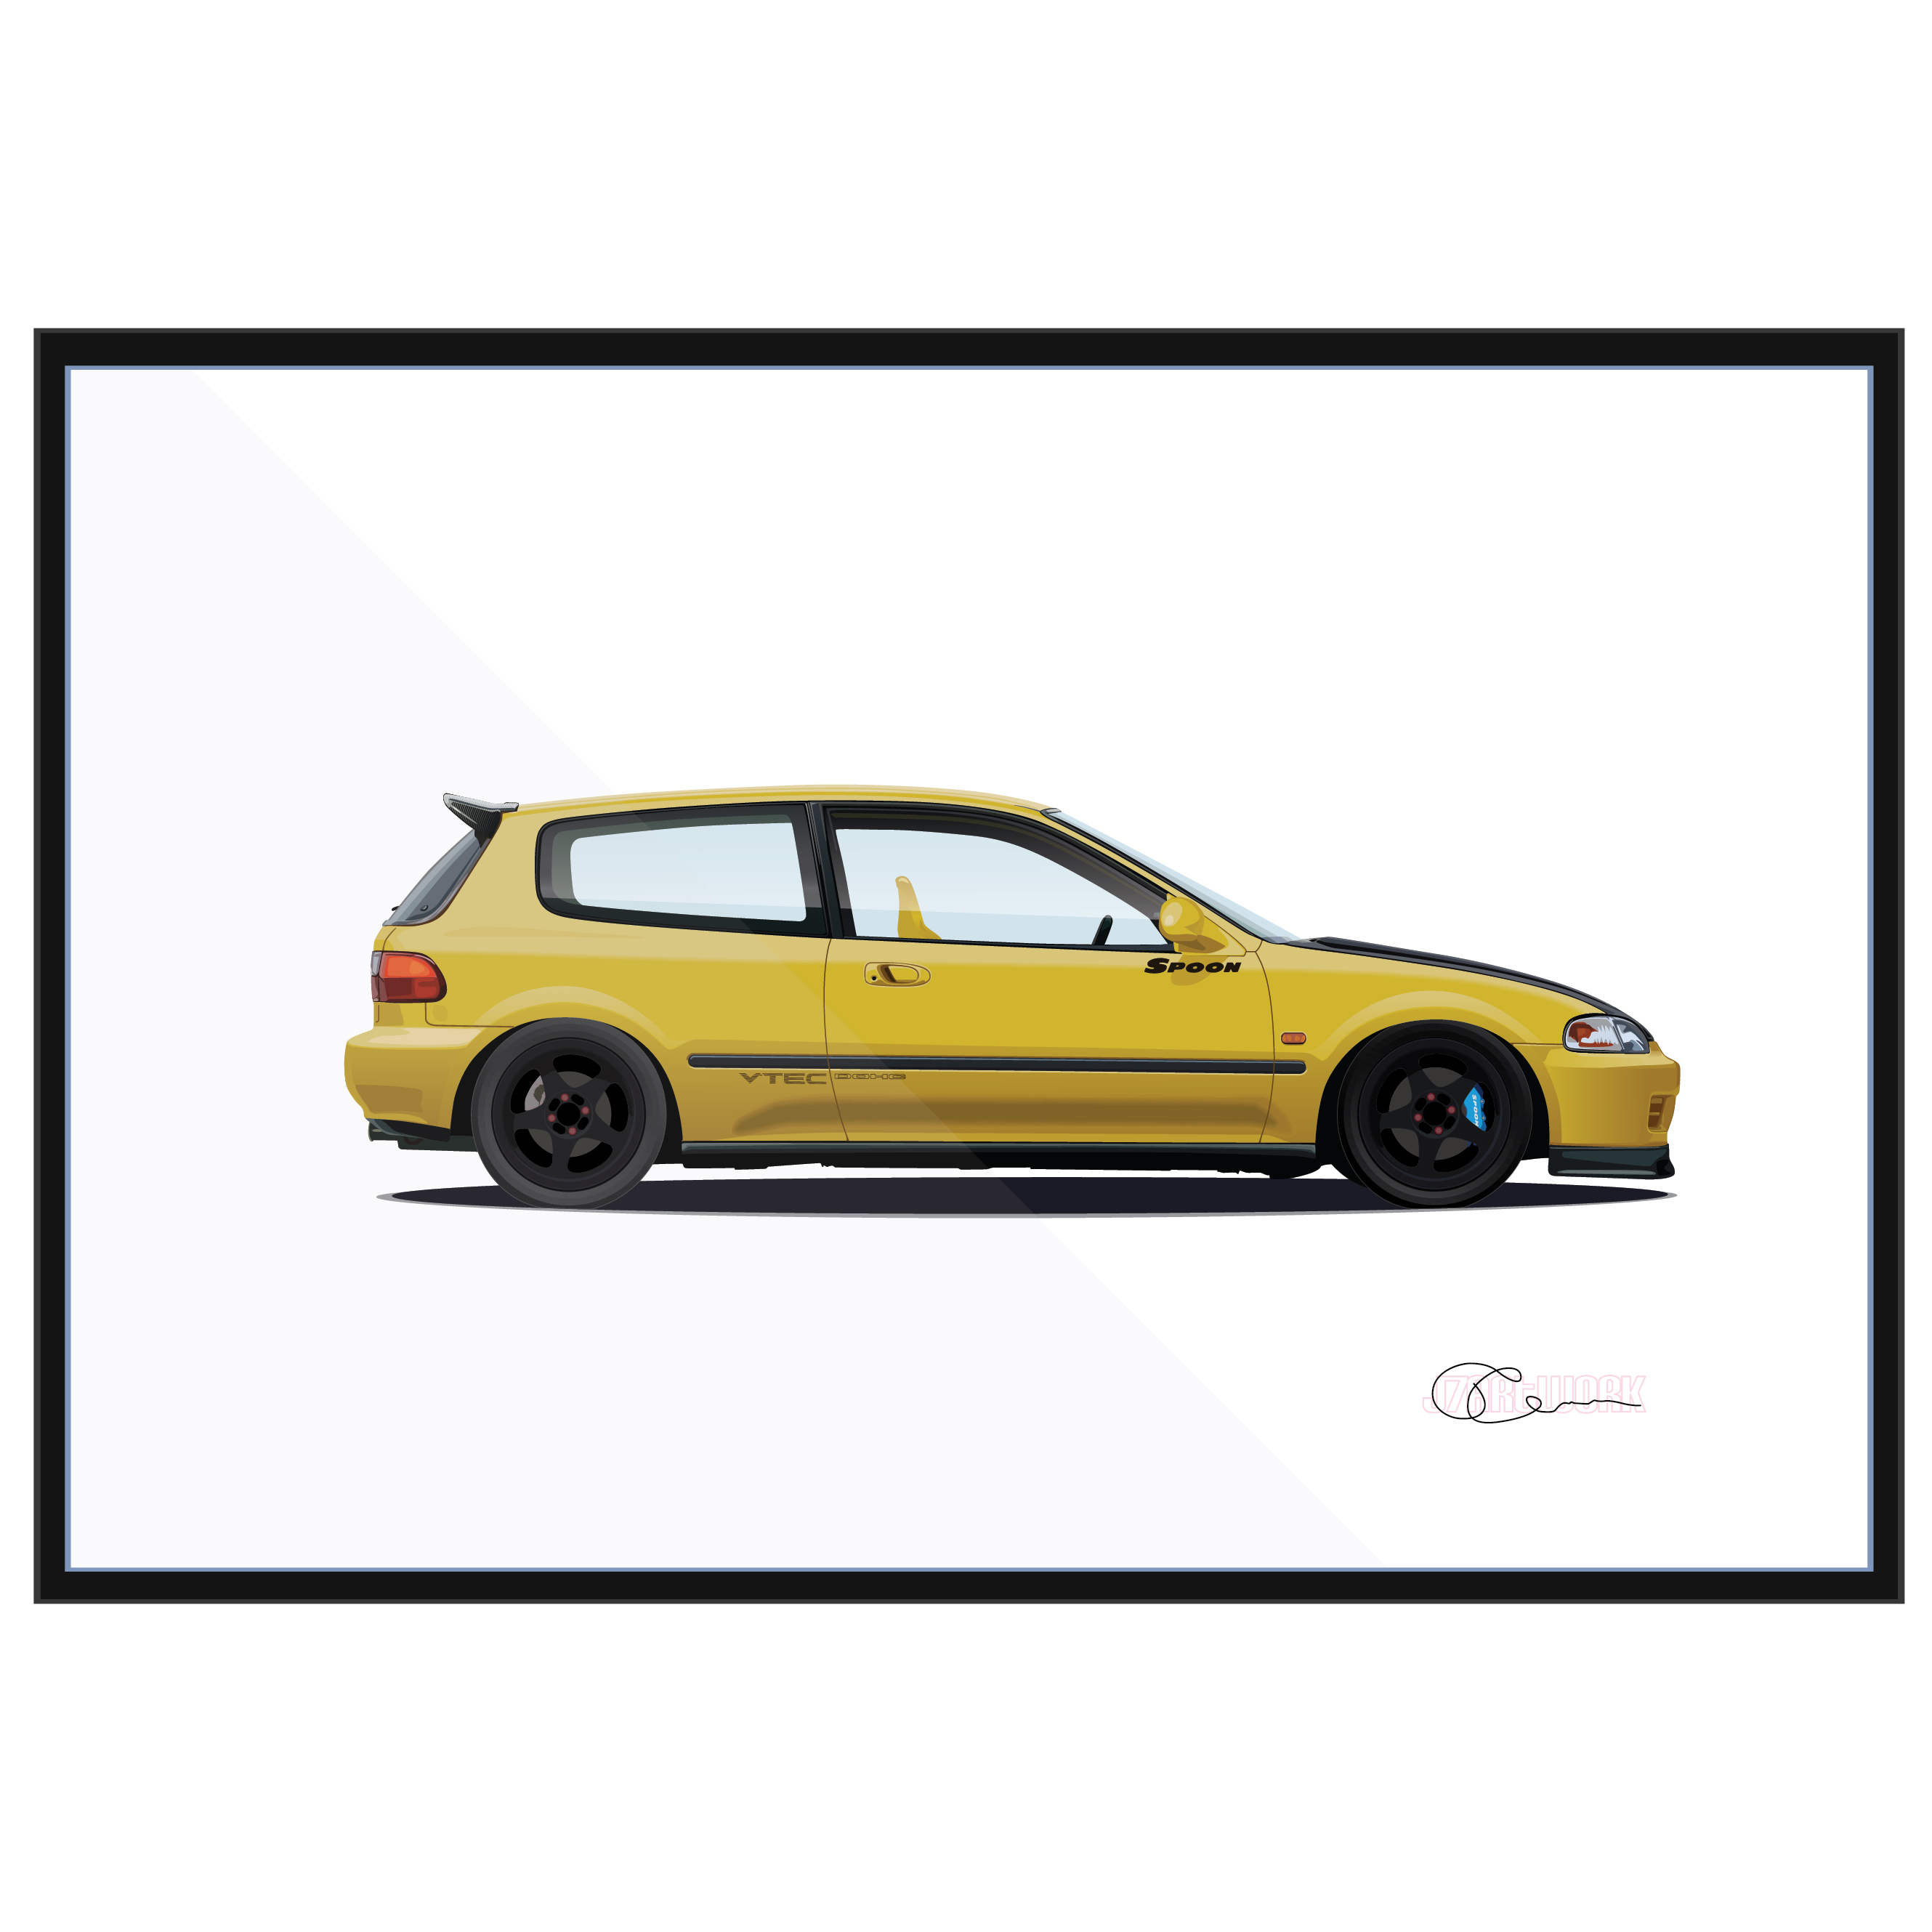 Honda Civic EG Spoon (yellow)